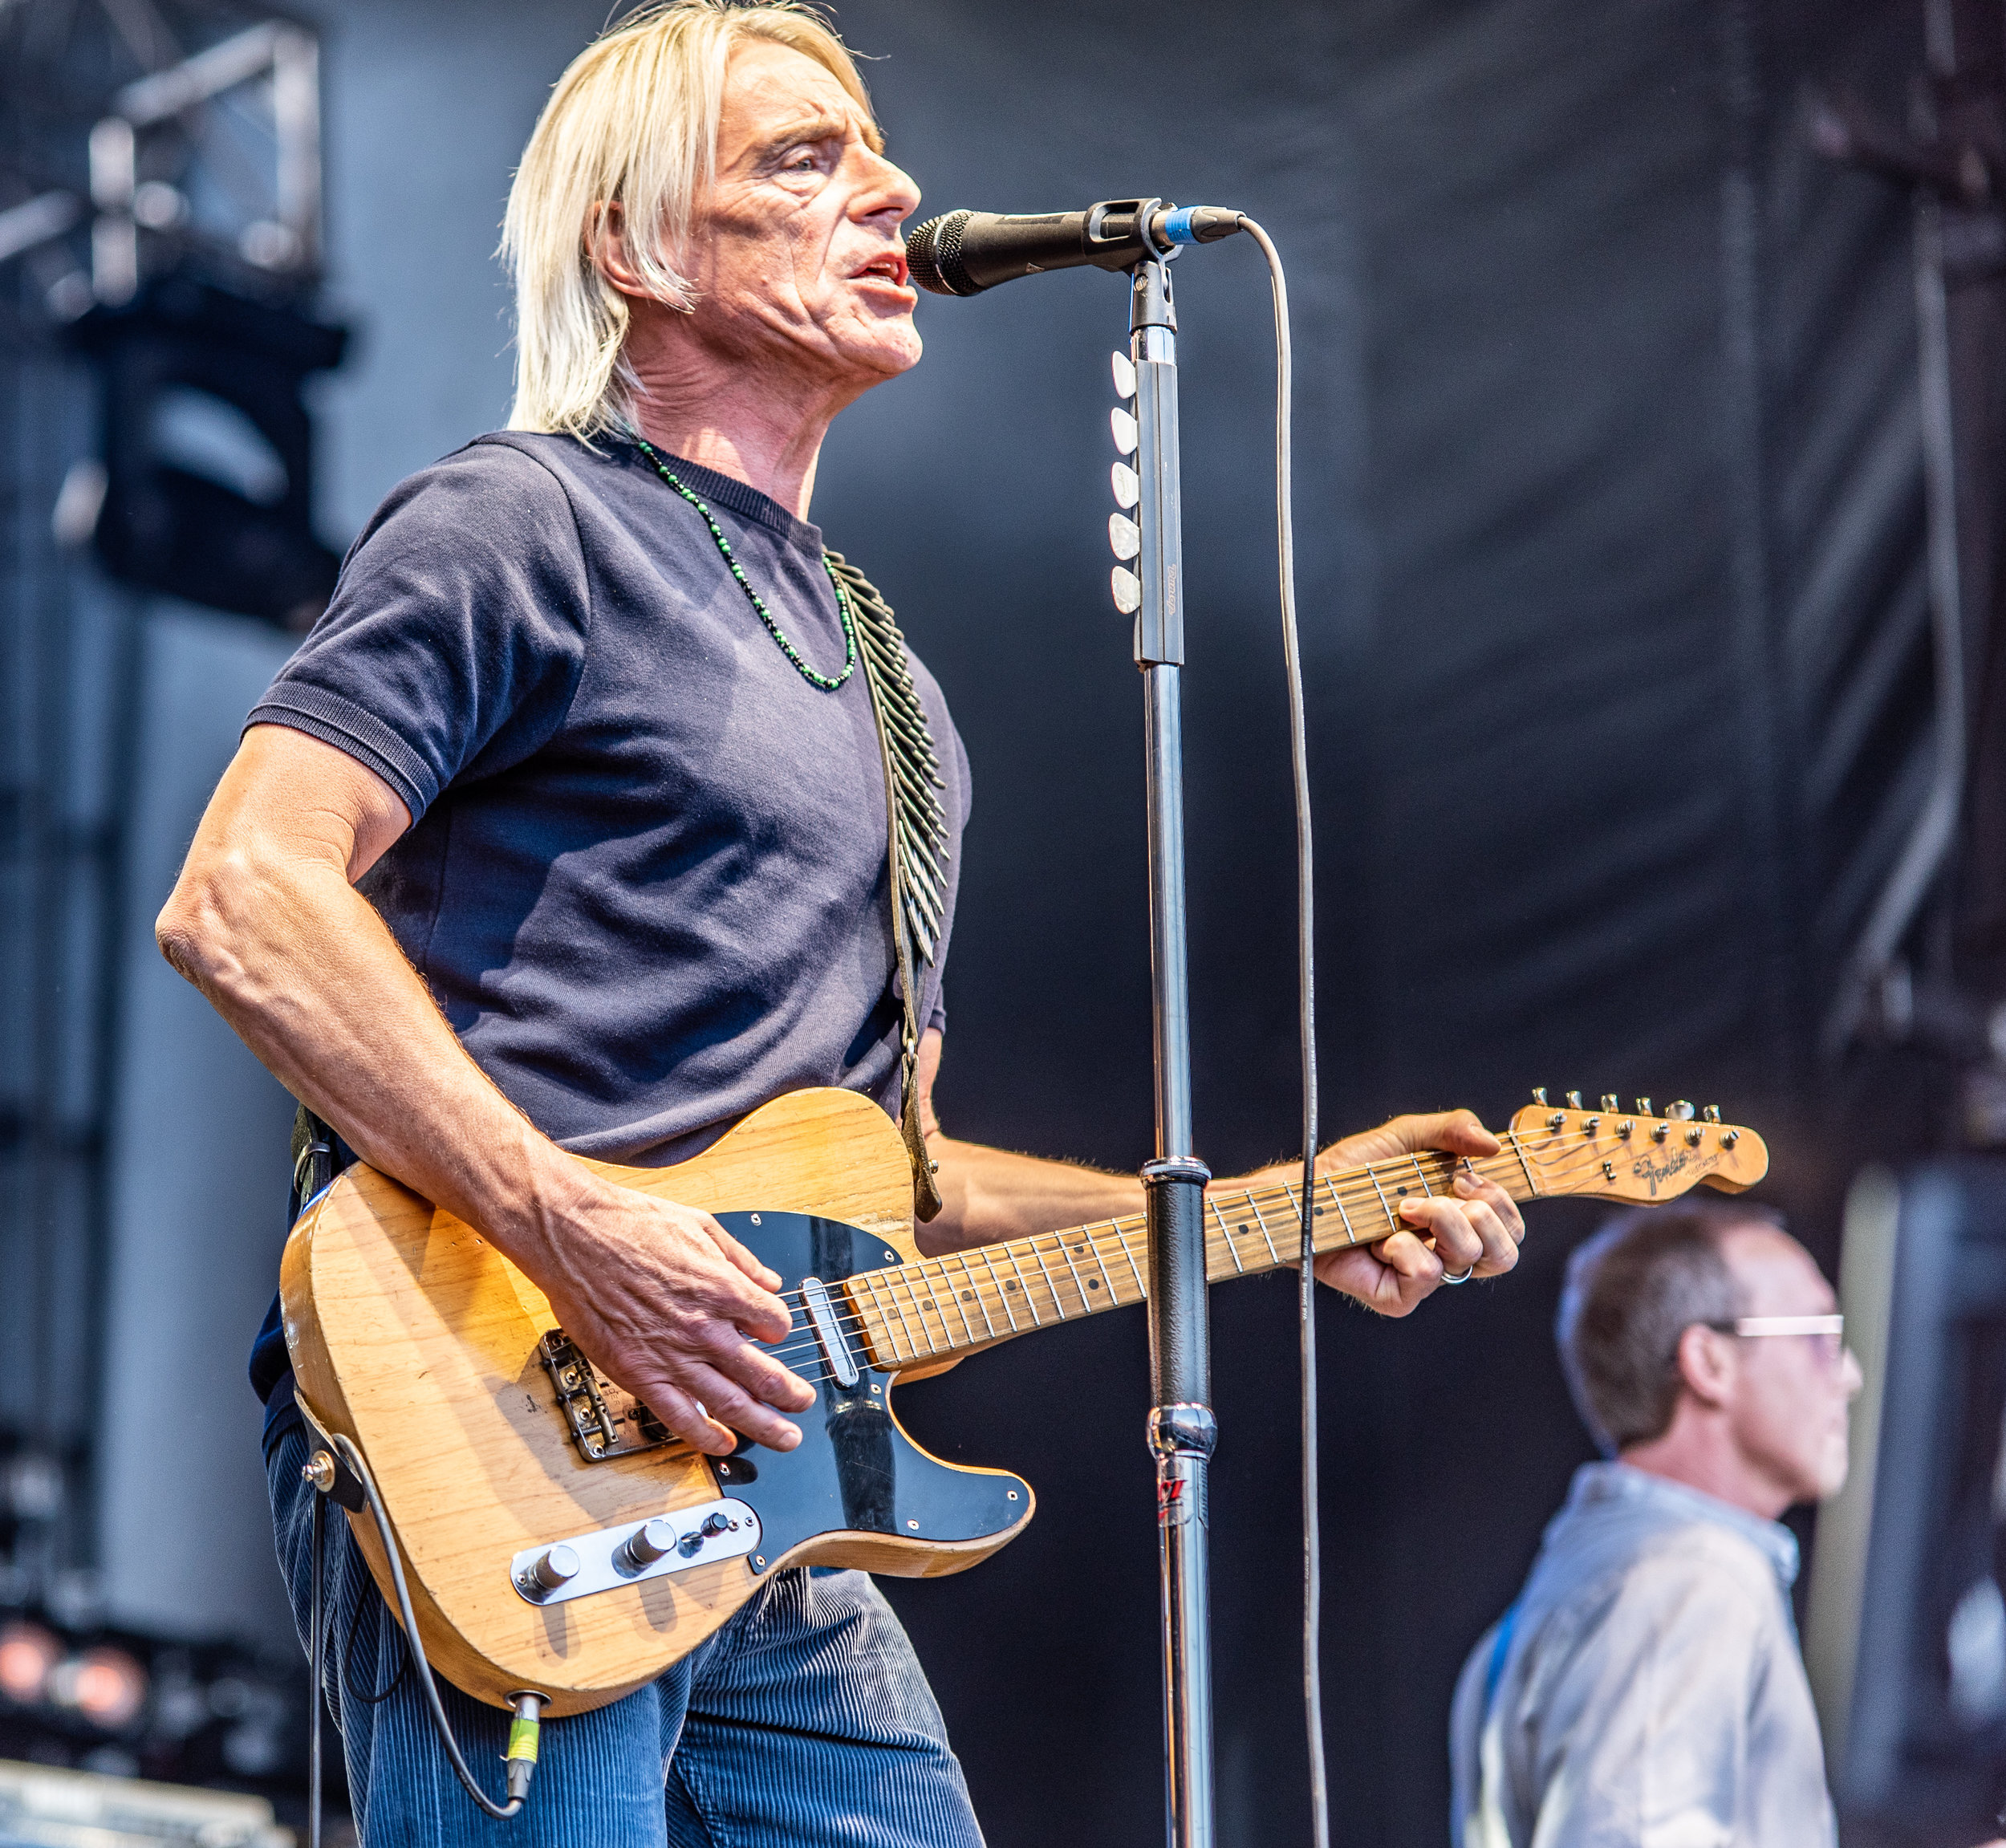 PAUL WELLER PERFORMING AT EDINBURGH CASTLE - 11.07.2019  PICTURE BY: | CALUM BUCHAN PHOTOGRAPHY